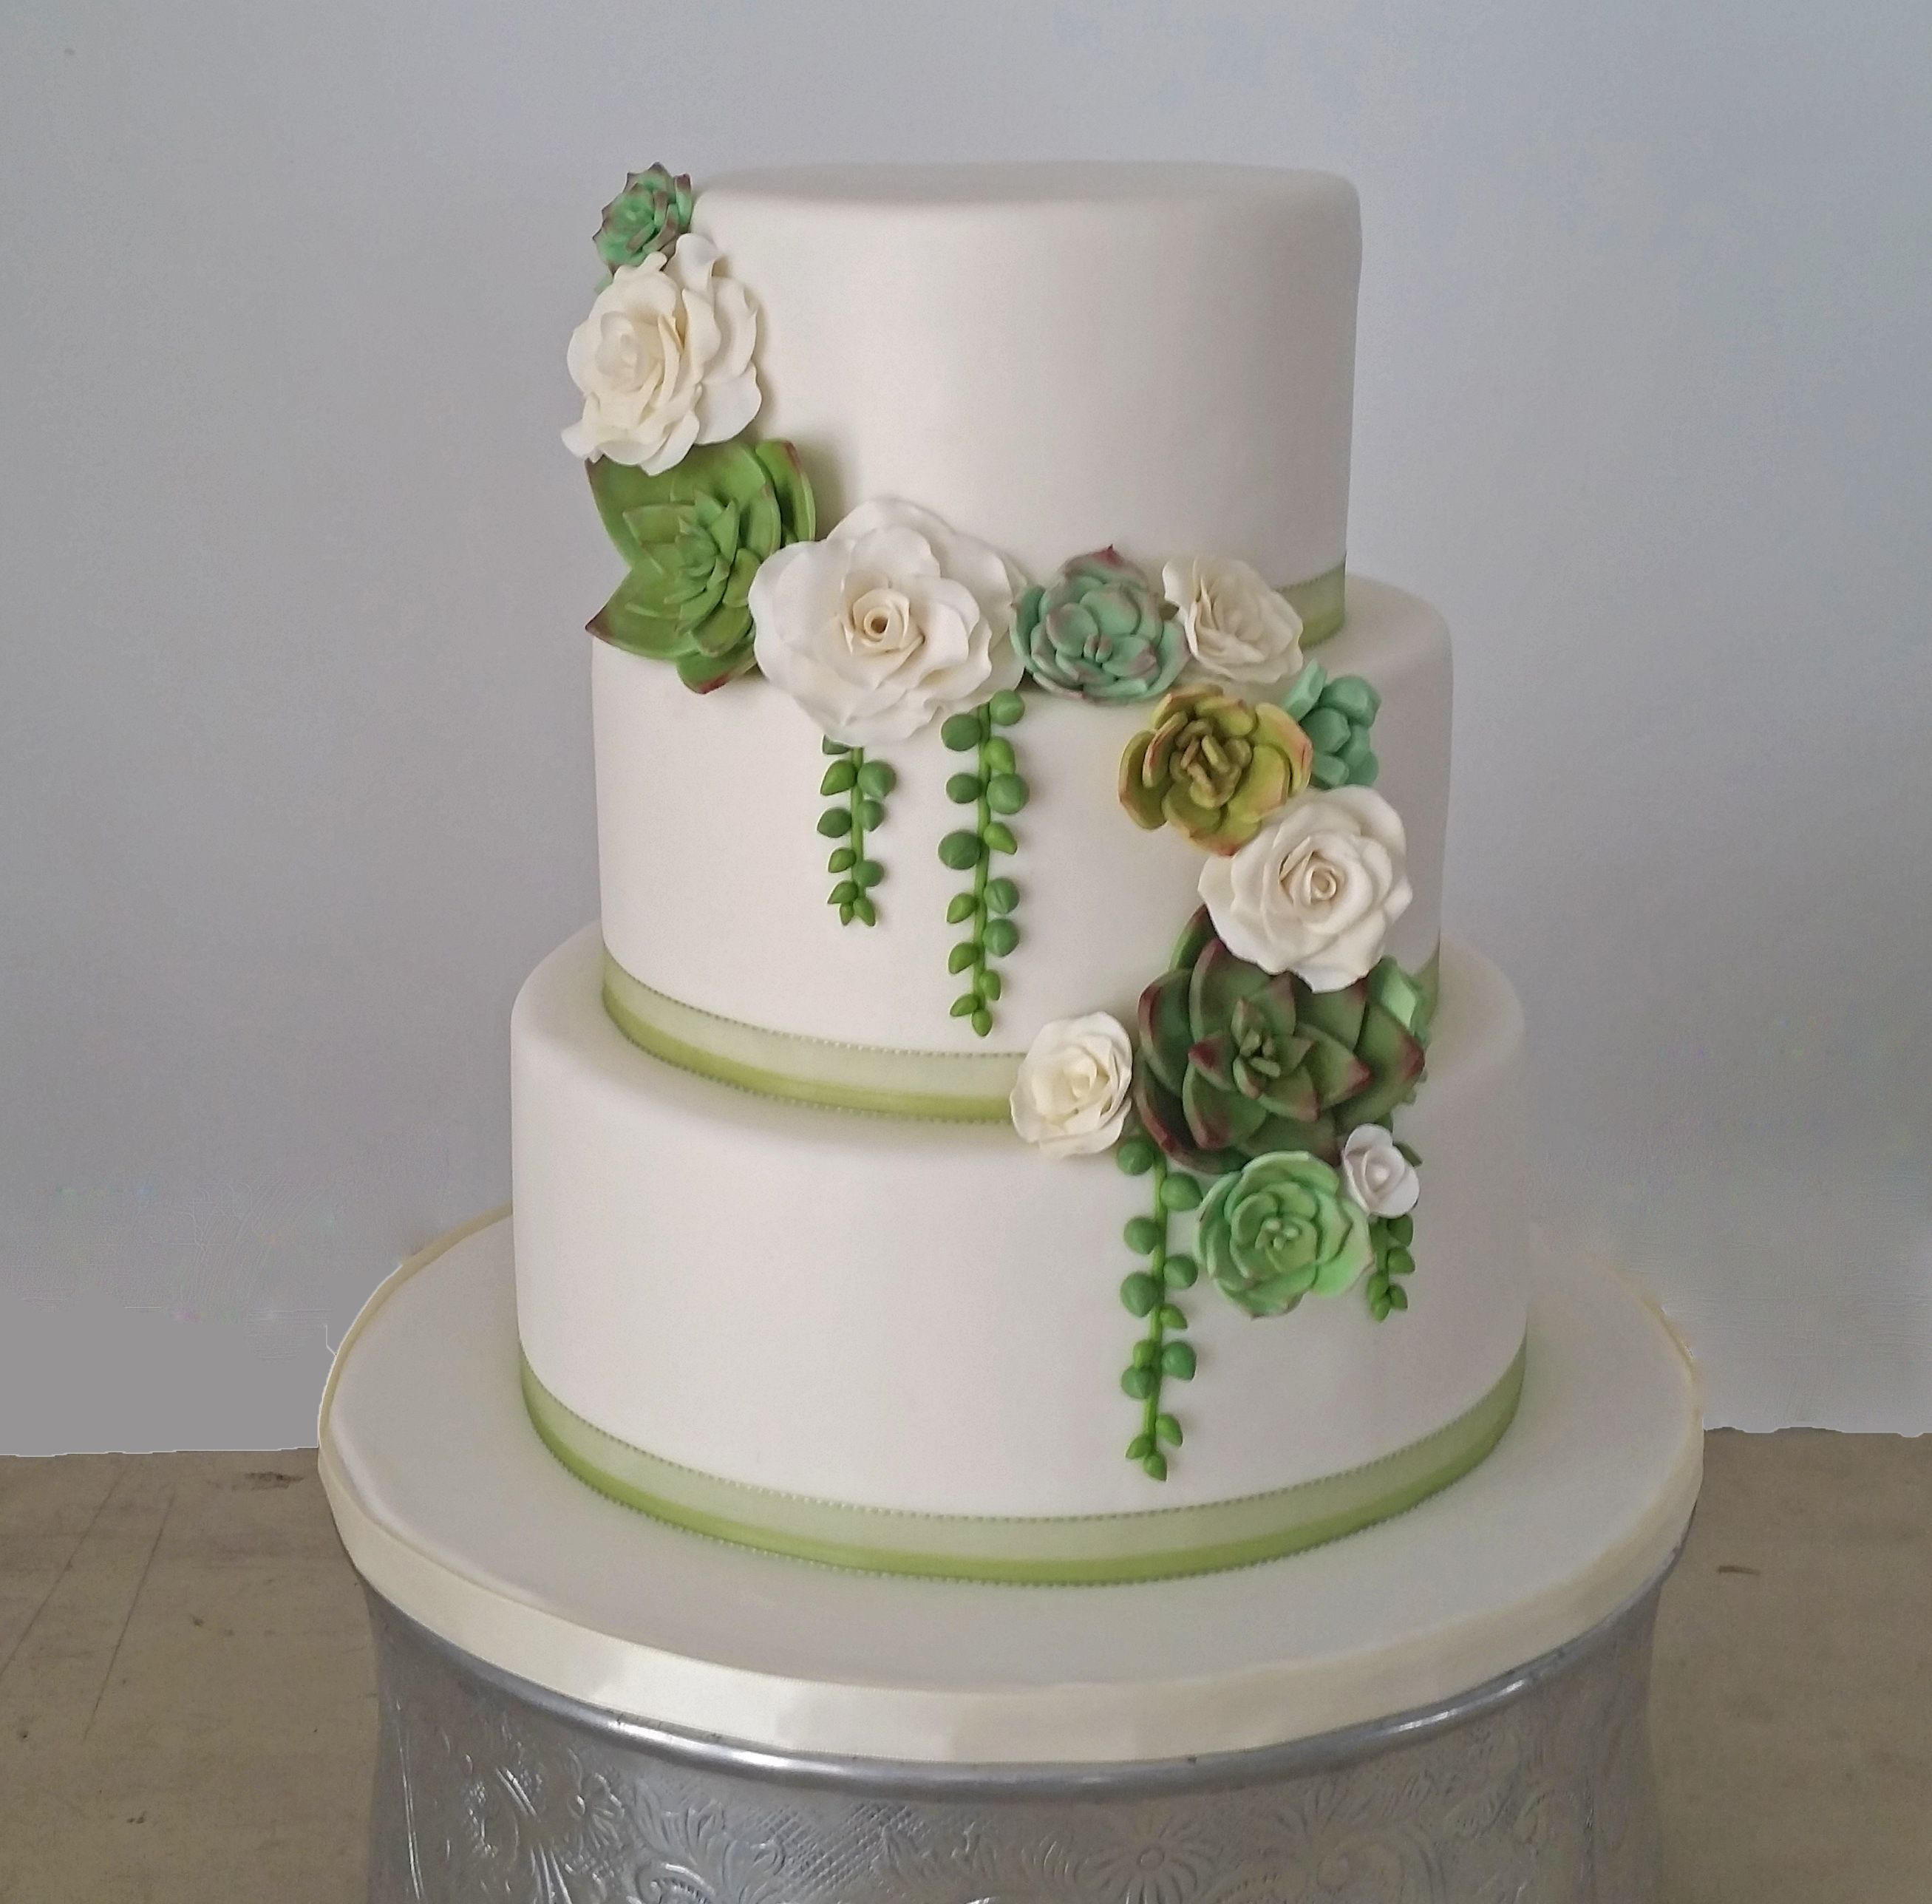 Beautiful Wedding Cakes By The Baking Grounds Bakery Café: Fondant Succulent Wedding Cake #succulent